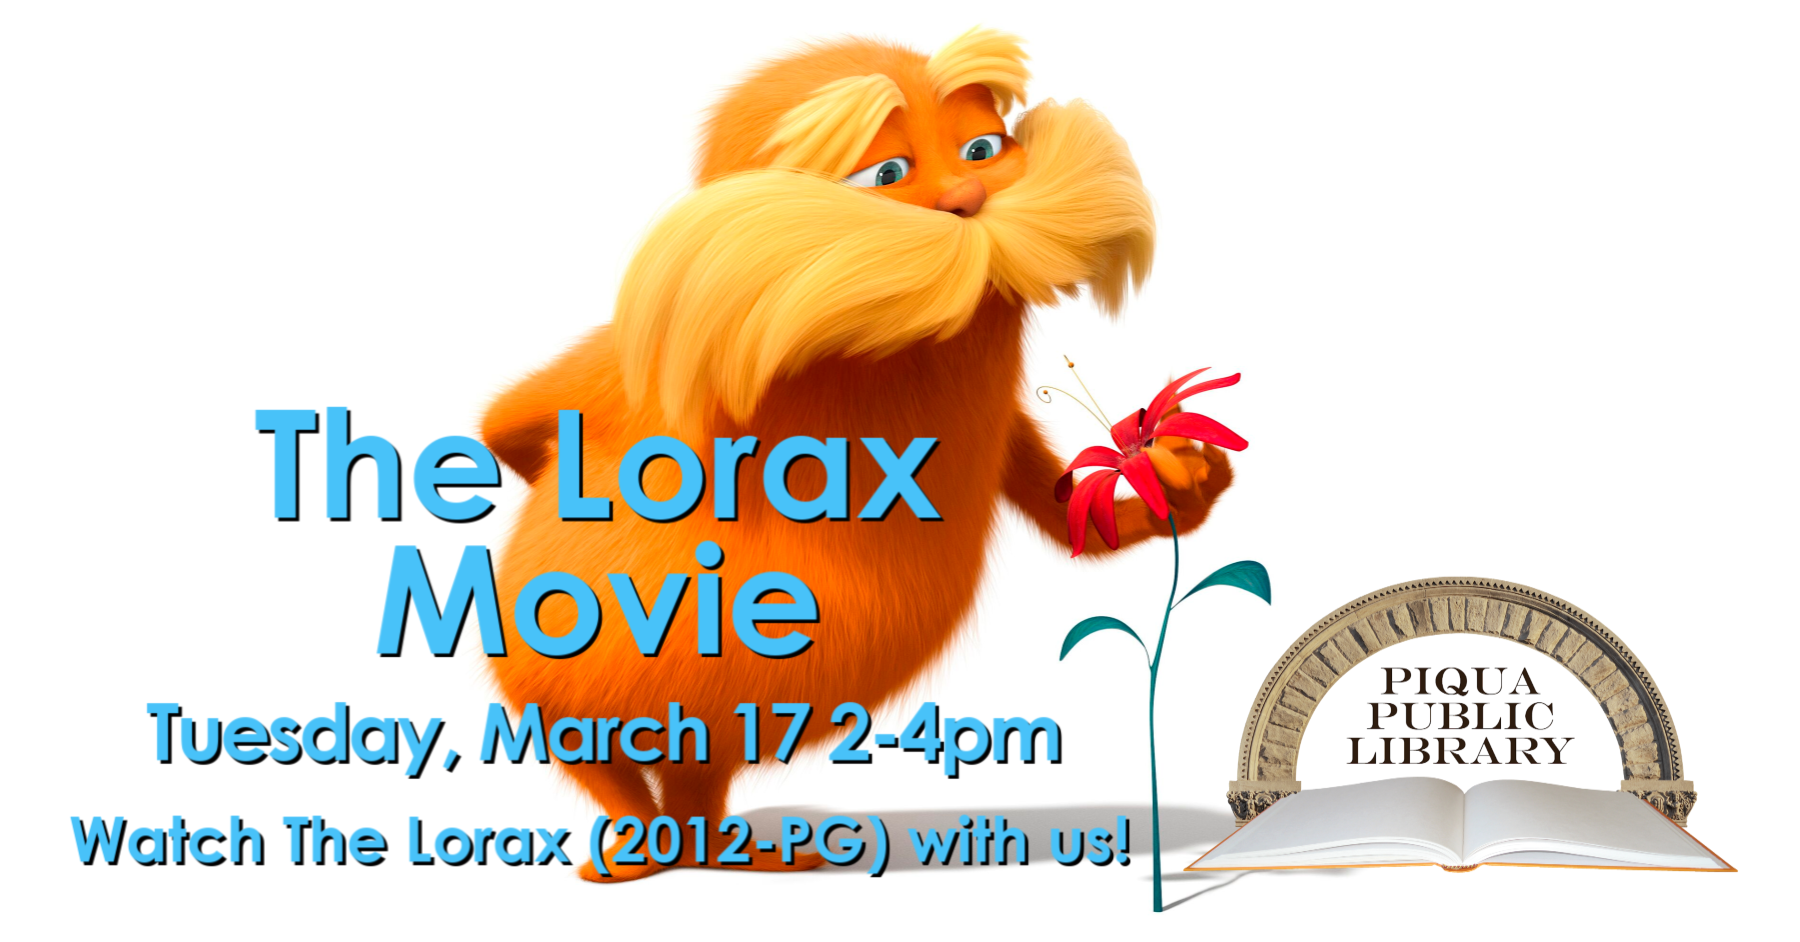 Watch Dr. Seuss' The Lorax movie with us at the Piqua Public Library on Tuesday, March 17 from 2 to 4pm! A 12-year-old boy searches for the one thing that will enable him to win the affection of the girl of his dreams. To find it he must discover the story of the Lorax, the grumpy yet charming creature who fights to protect his world. This free movie showing is for all ages, the movie is rated PG.  #PiquaLibrary #MovieNight #ThisisPiqua #LovePiqua #PiquaOhio #ilovelibraries #librarylove